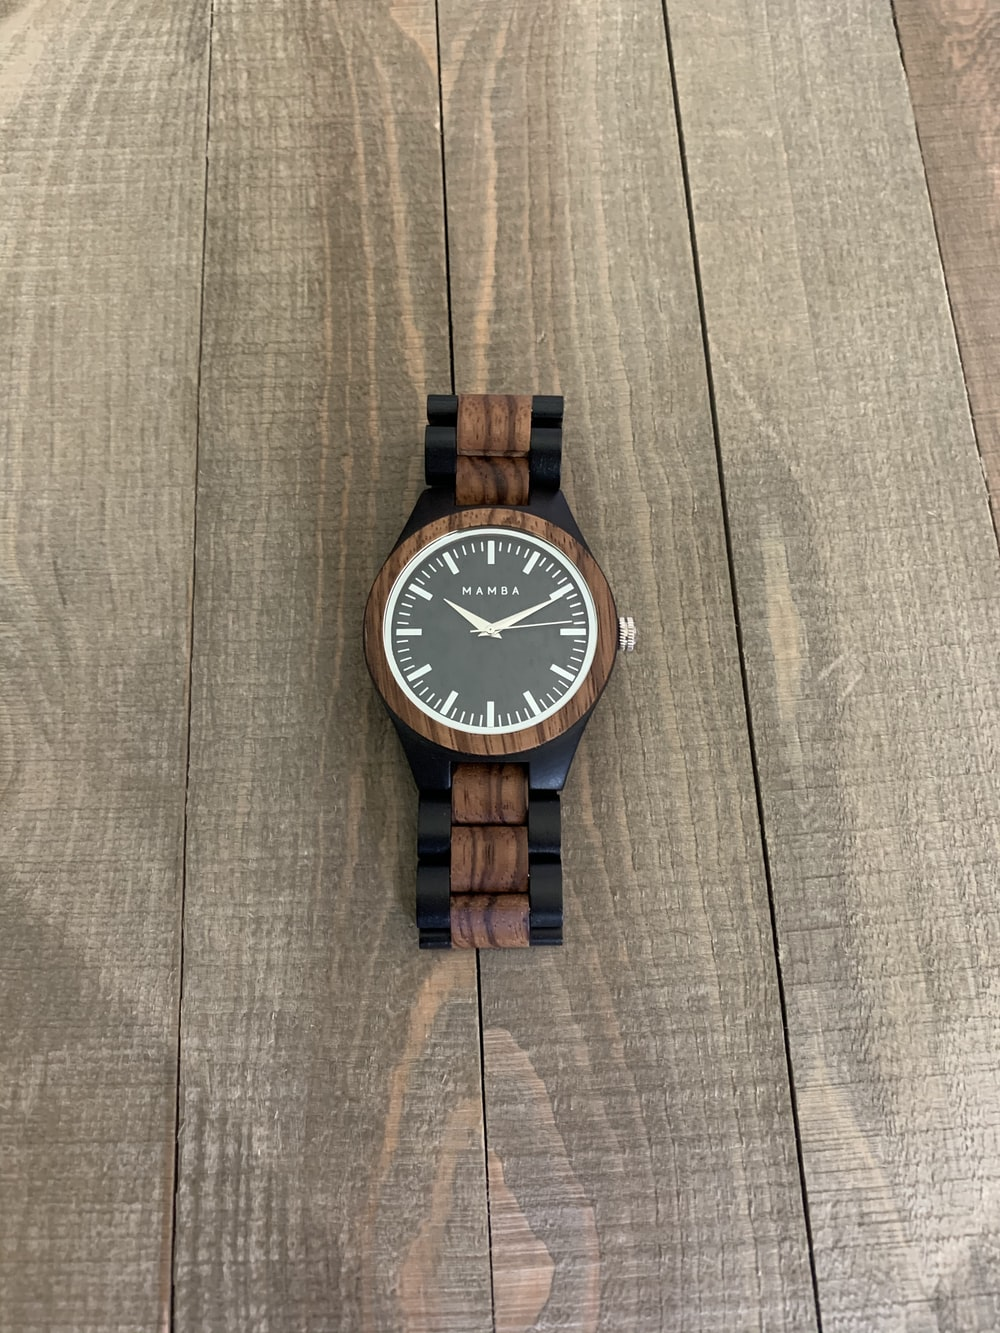 brown and white analog watch at 10 10